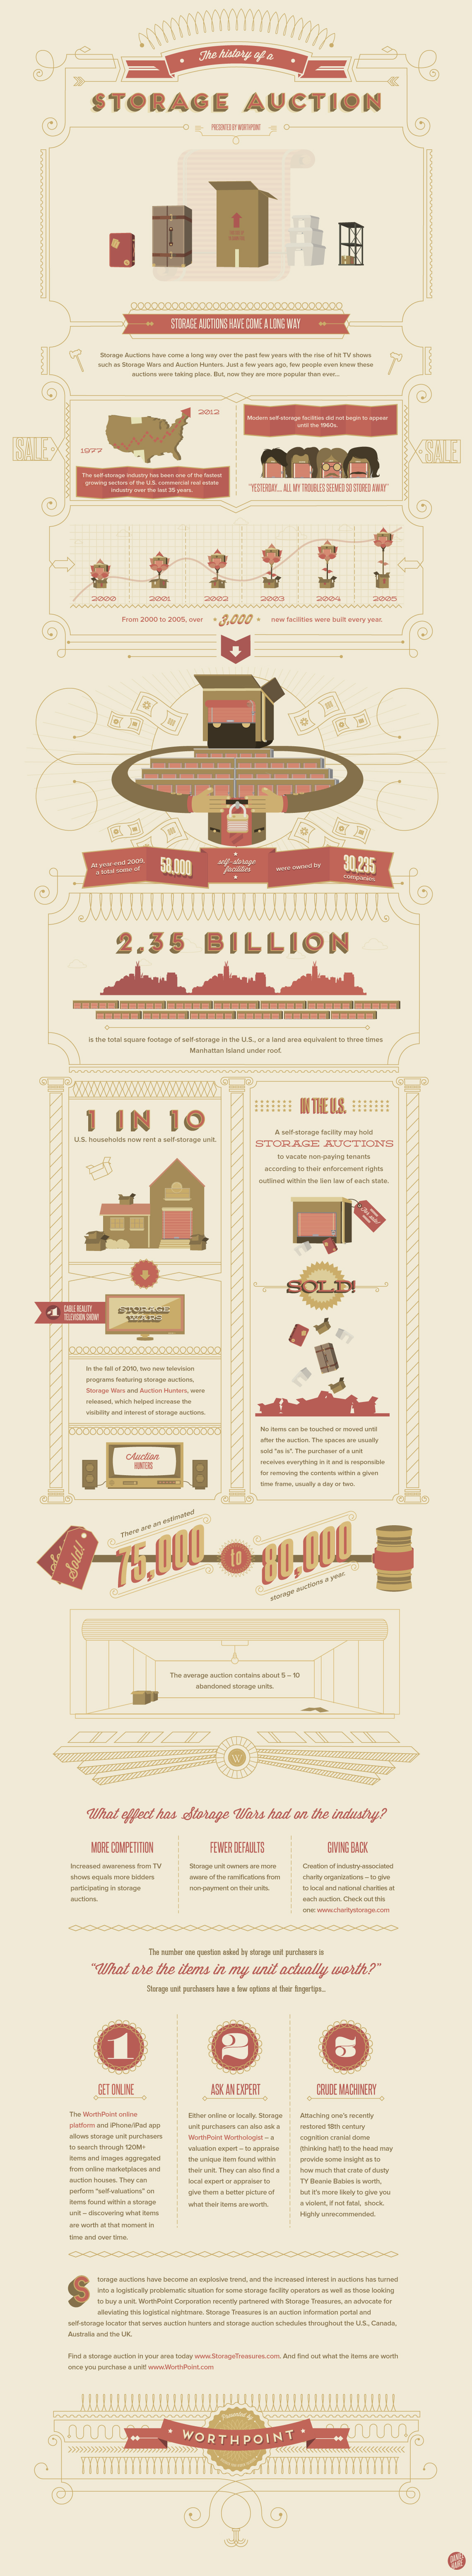 INFOGRAPHIC: The History of a Storage Auction